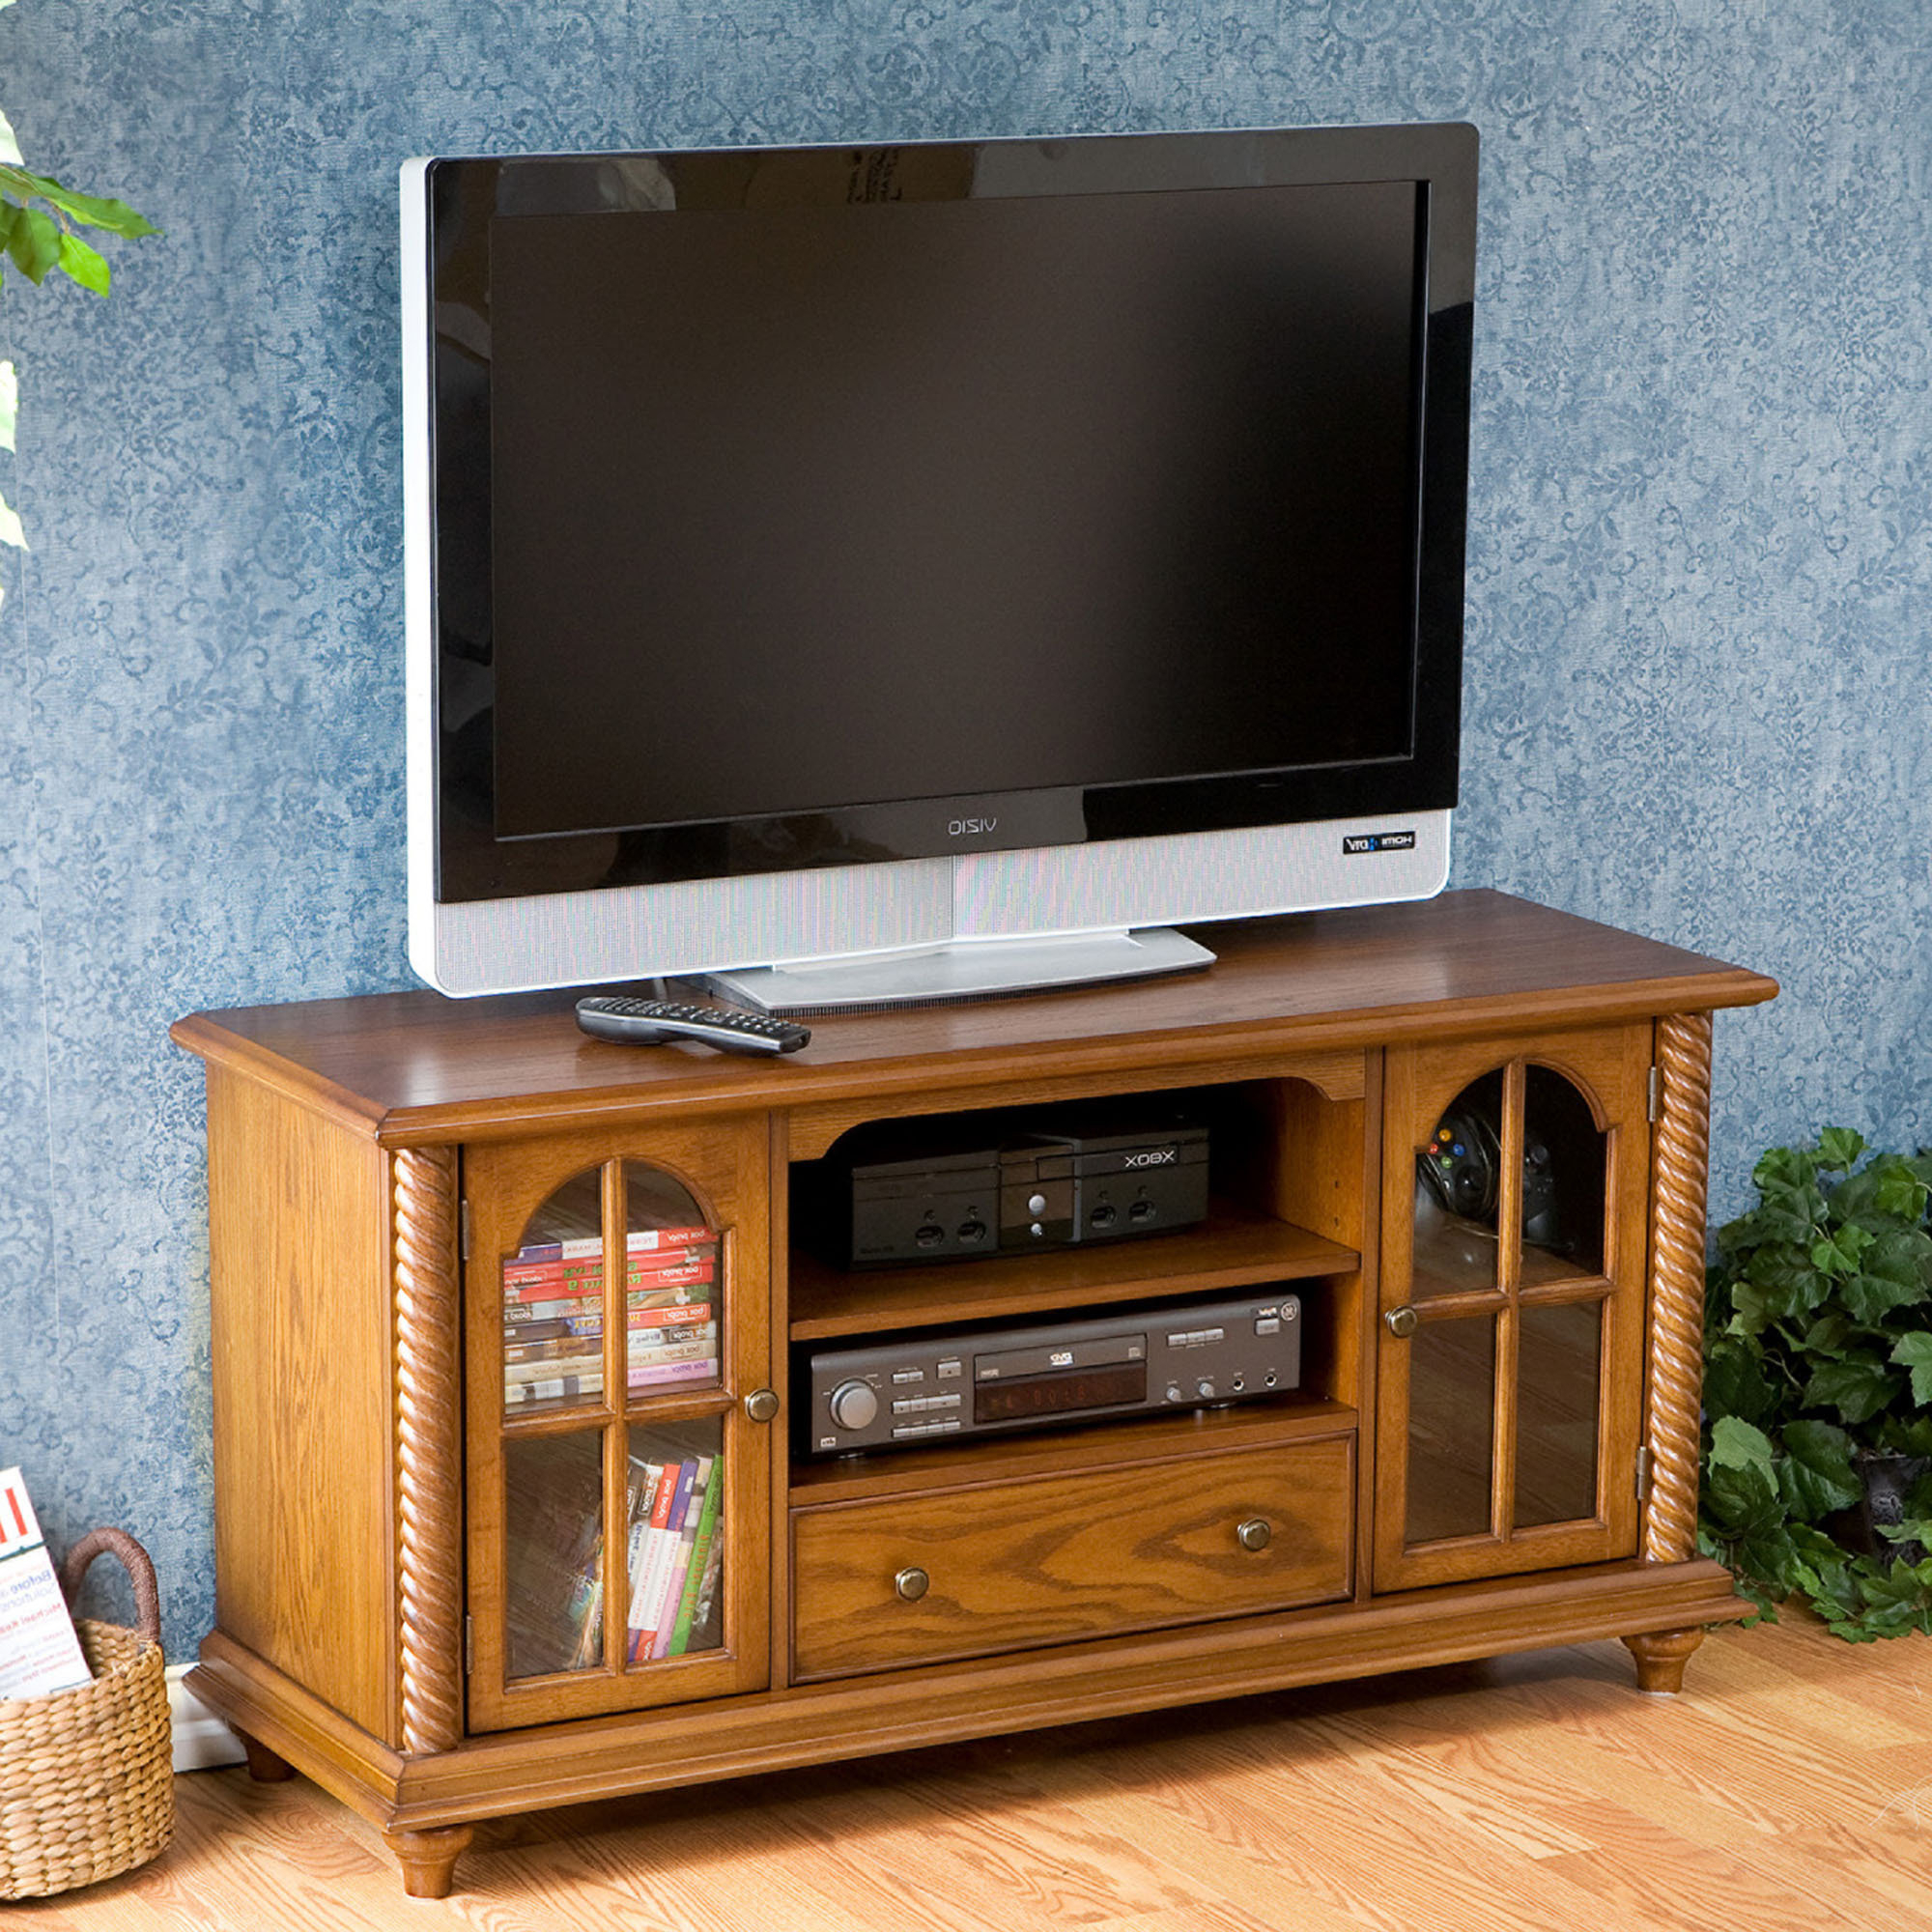 Preferred Ideas: Kmart Fireplace Tv Stand For Exciting Your Space Room Ideas Throughout Fancy Tv Stands (View 15 of 20)